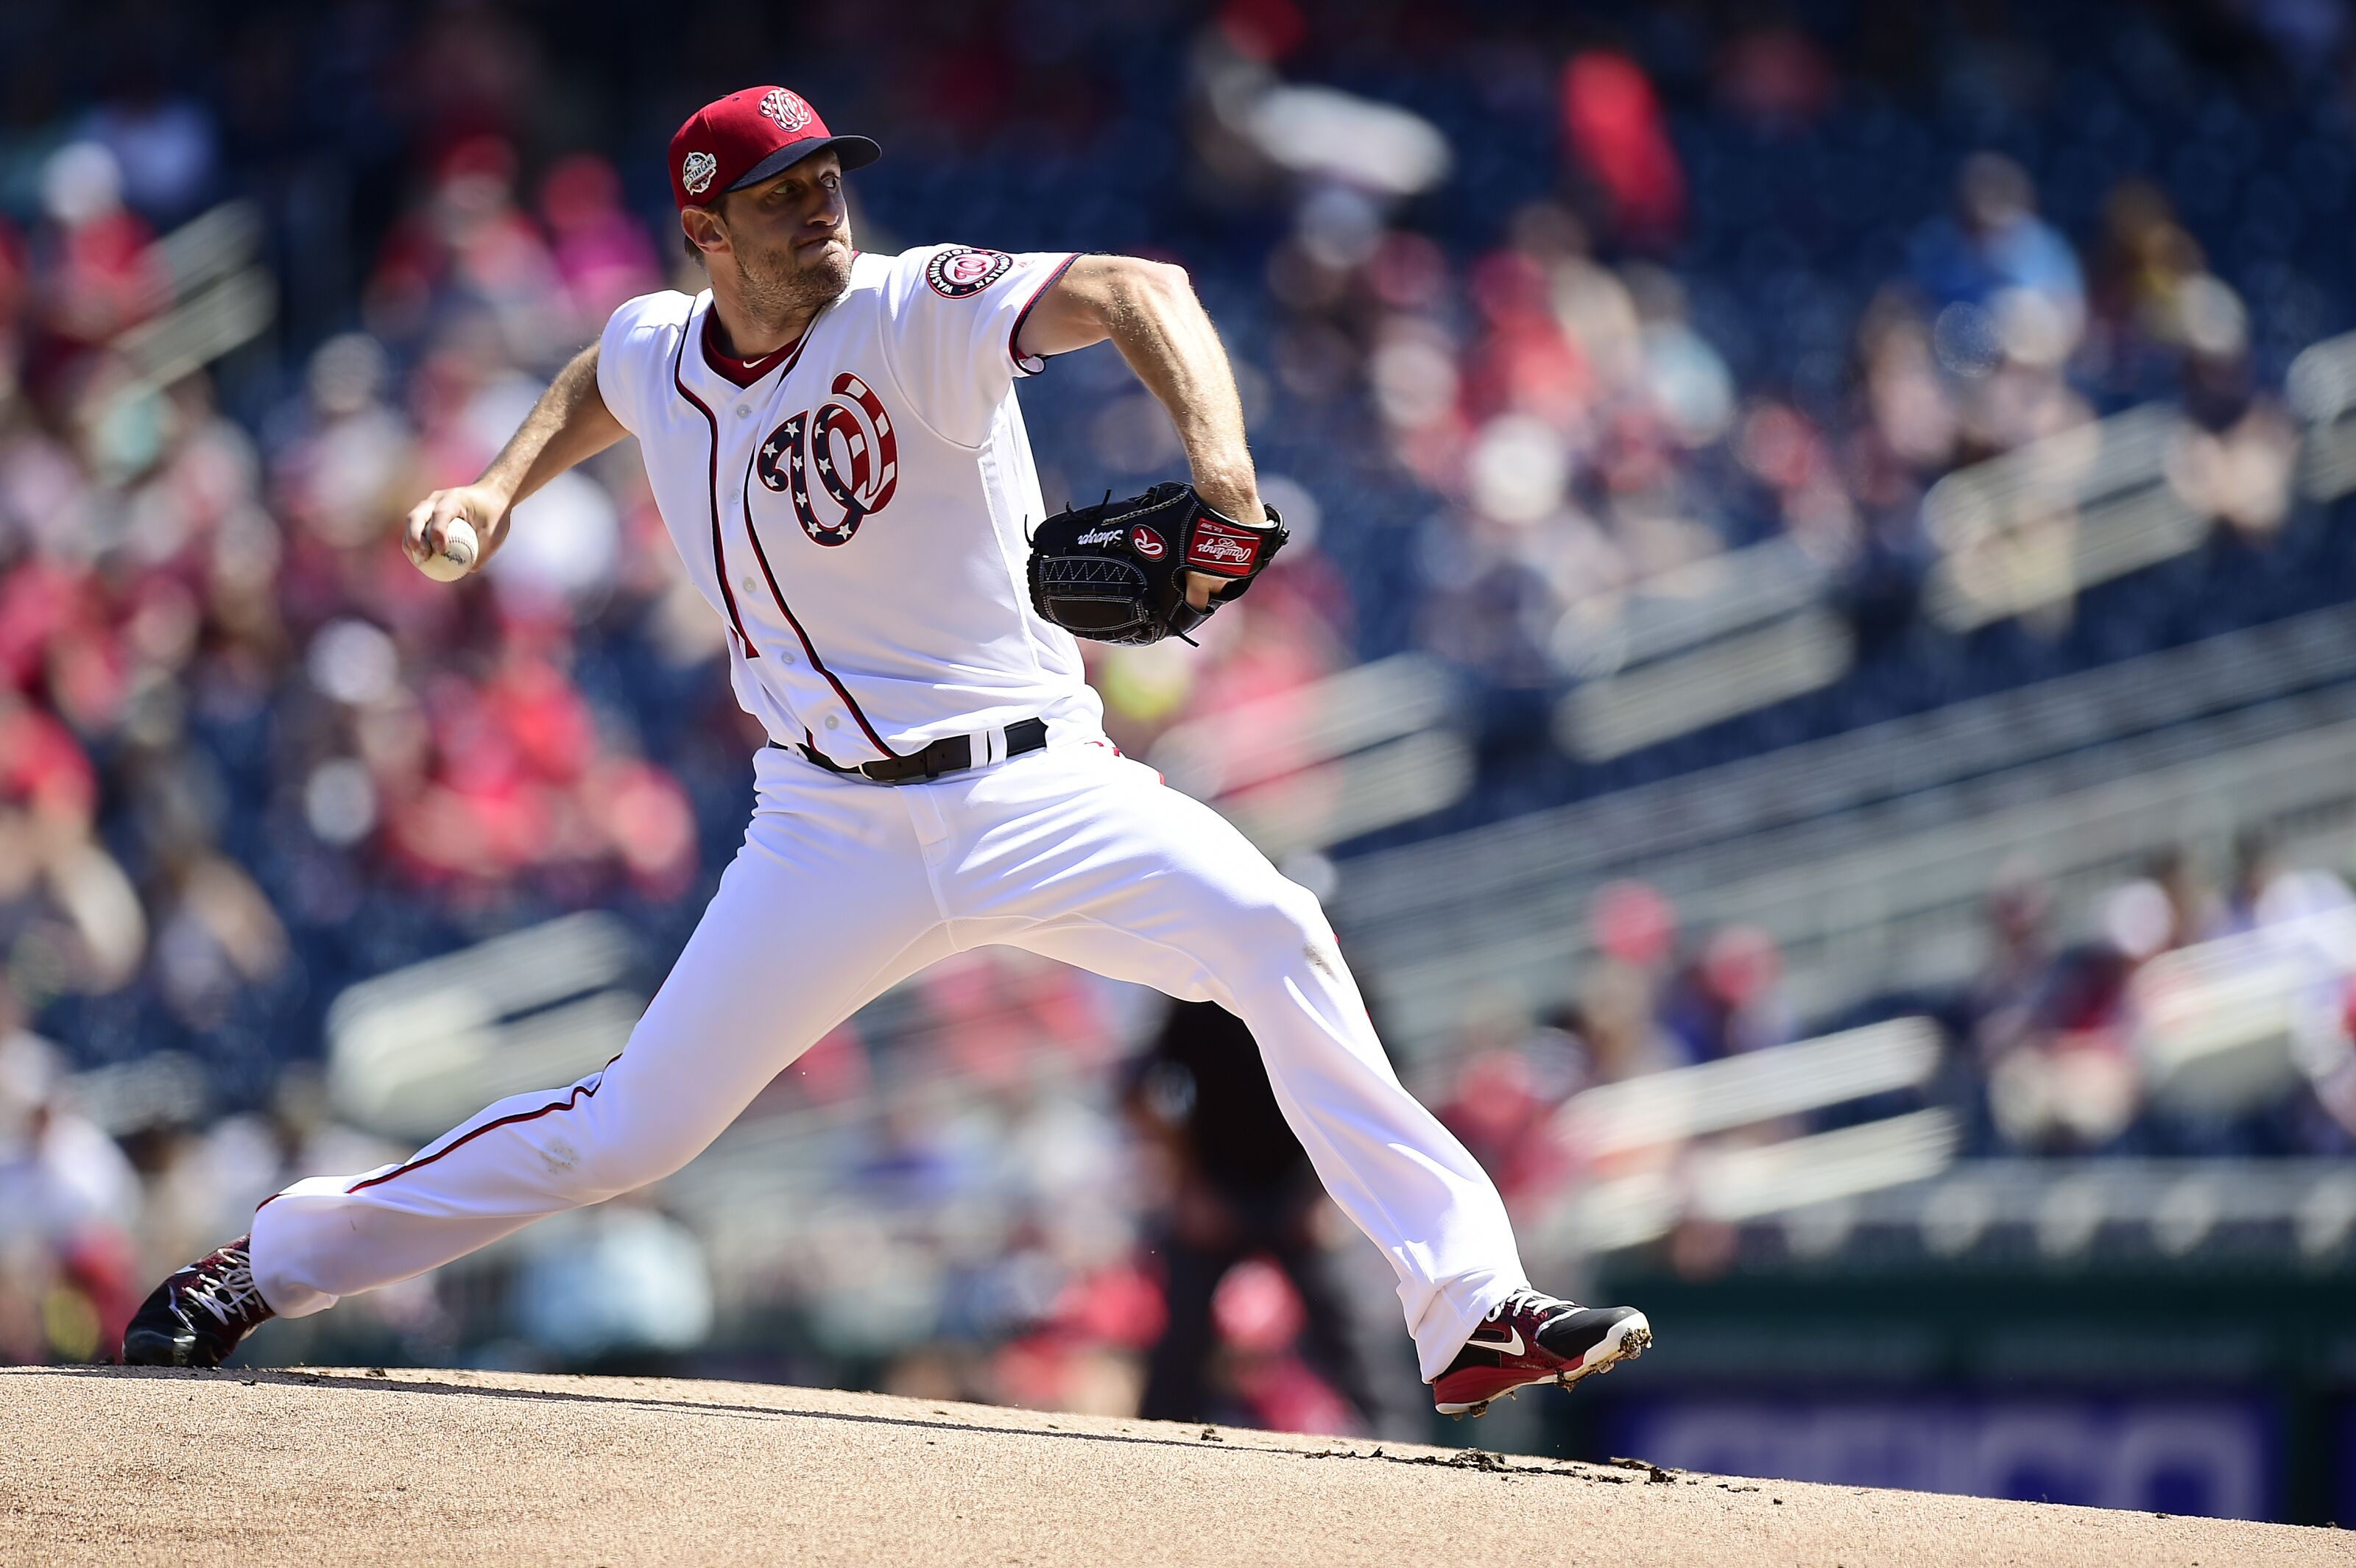 946241458-colorado-rockies-v-washington-nationals.jpg